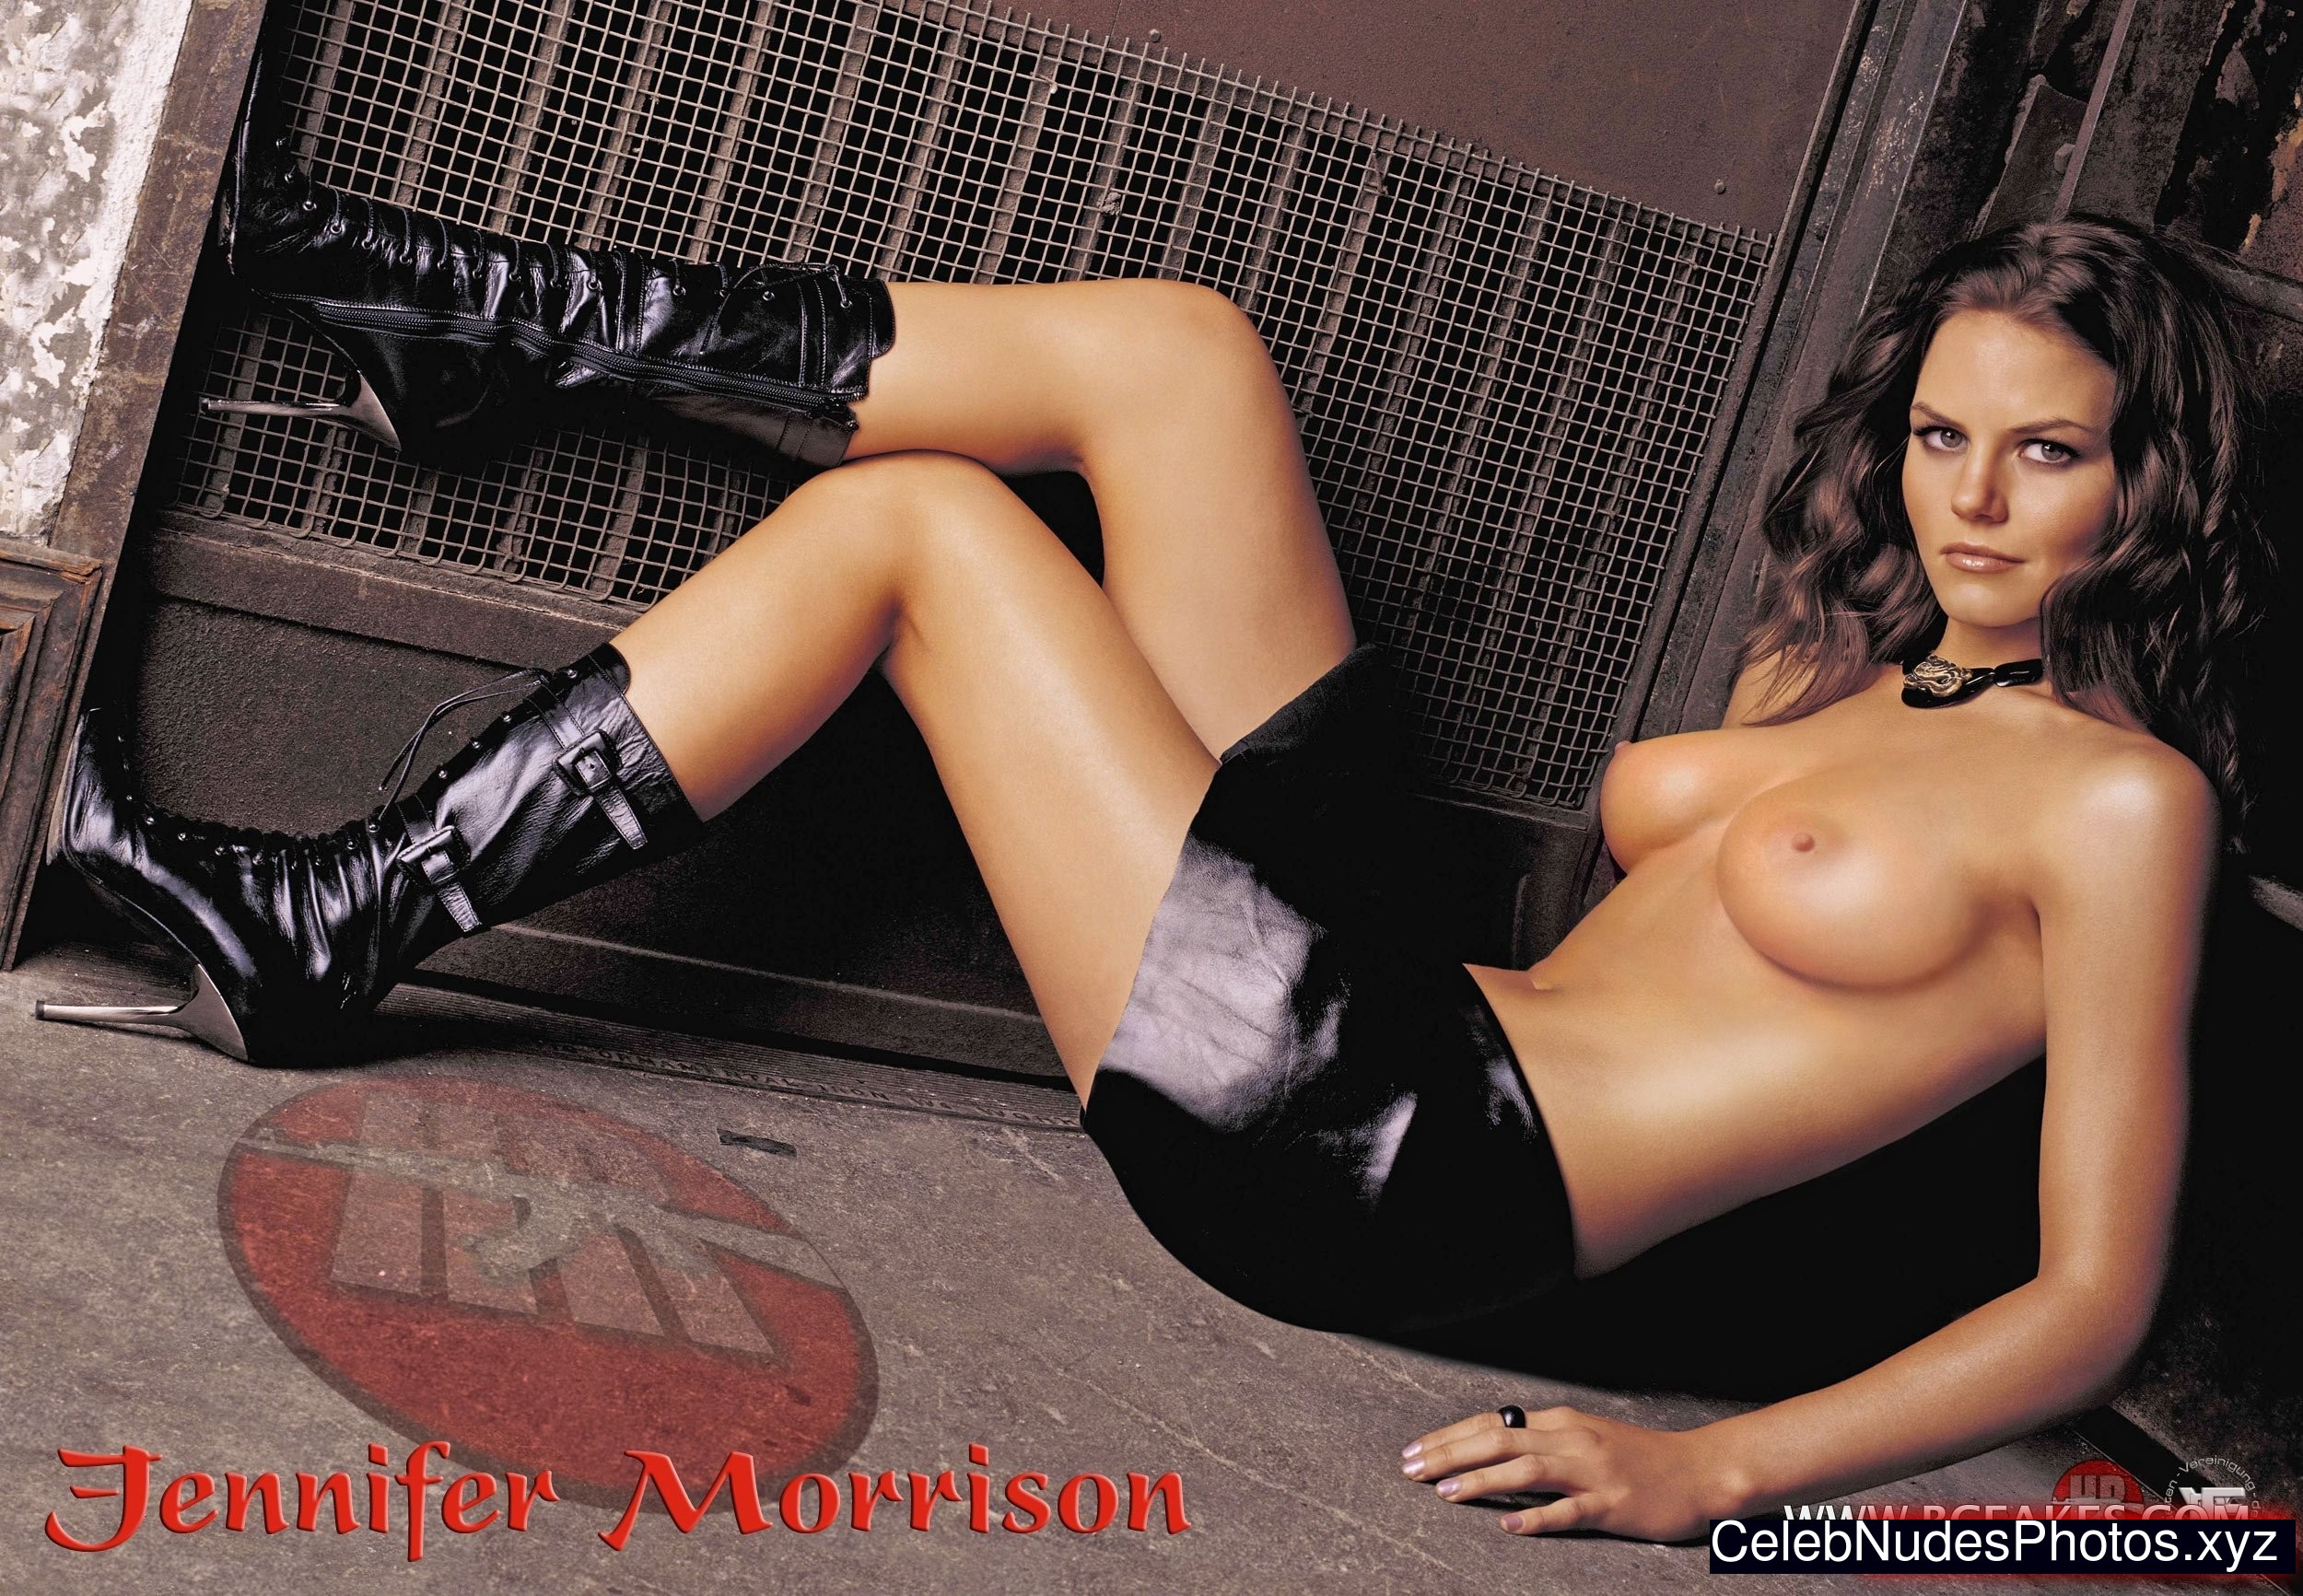 Morrison Hot Pictures Jennifer#5